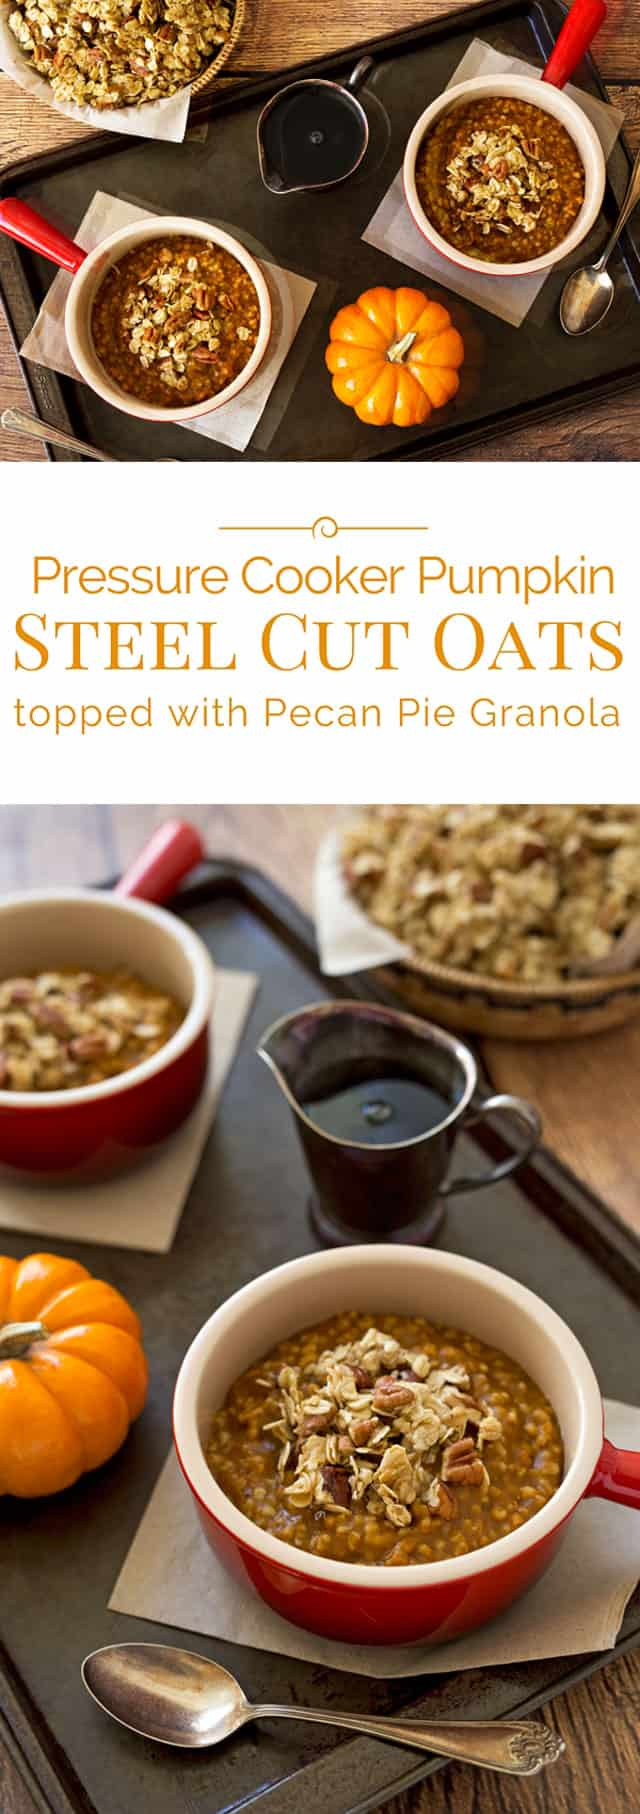 Pumpkin-Steel-Cut-Oats-Collage-Pressure-Cooking-Today